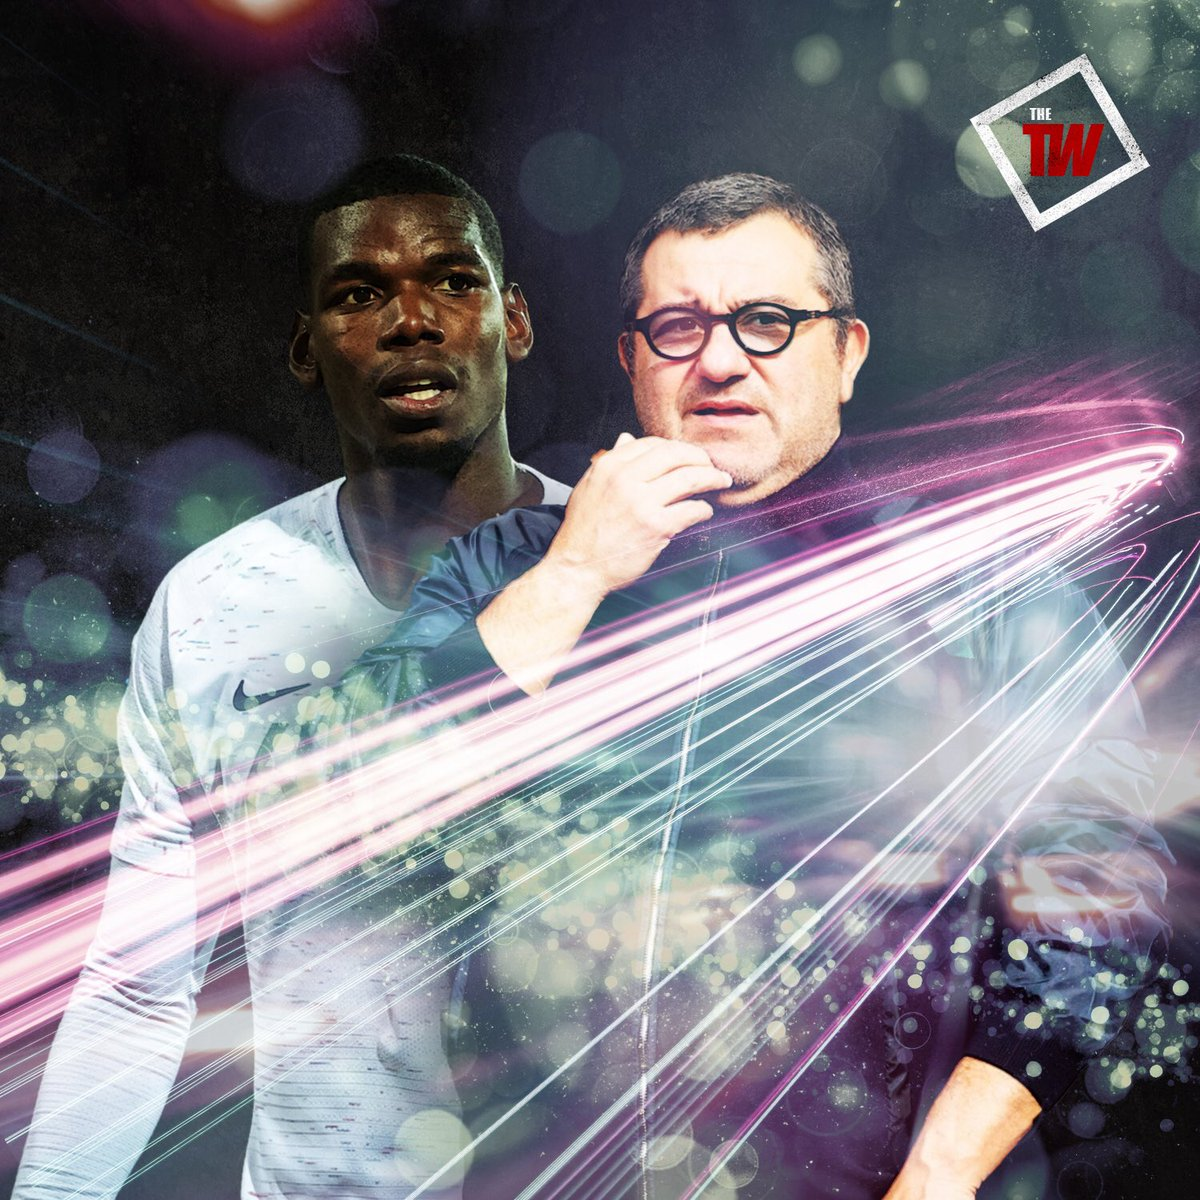 'The Cristiano Ronaldo manoeuvre' A way to keep Paul Pogba happy at Manchester United for one more season? #RMCF #FFF  https:// play.acast.com/s/thetransferw indow/2372de20-af46-470c-b6c2-bbb42aea4fbd  … <br>http://pic.twitter.com/0IvfMIE72s